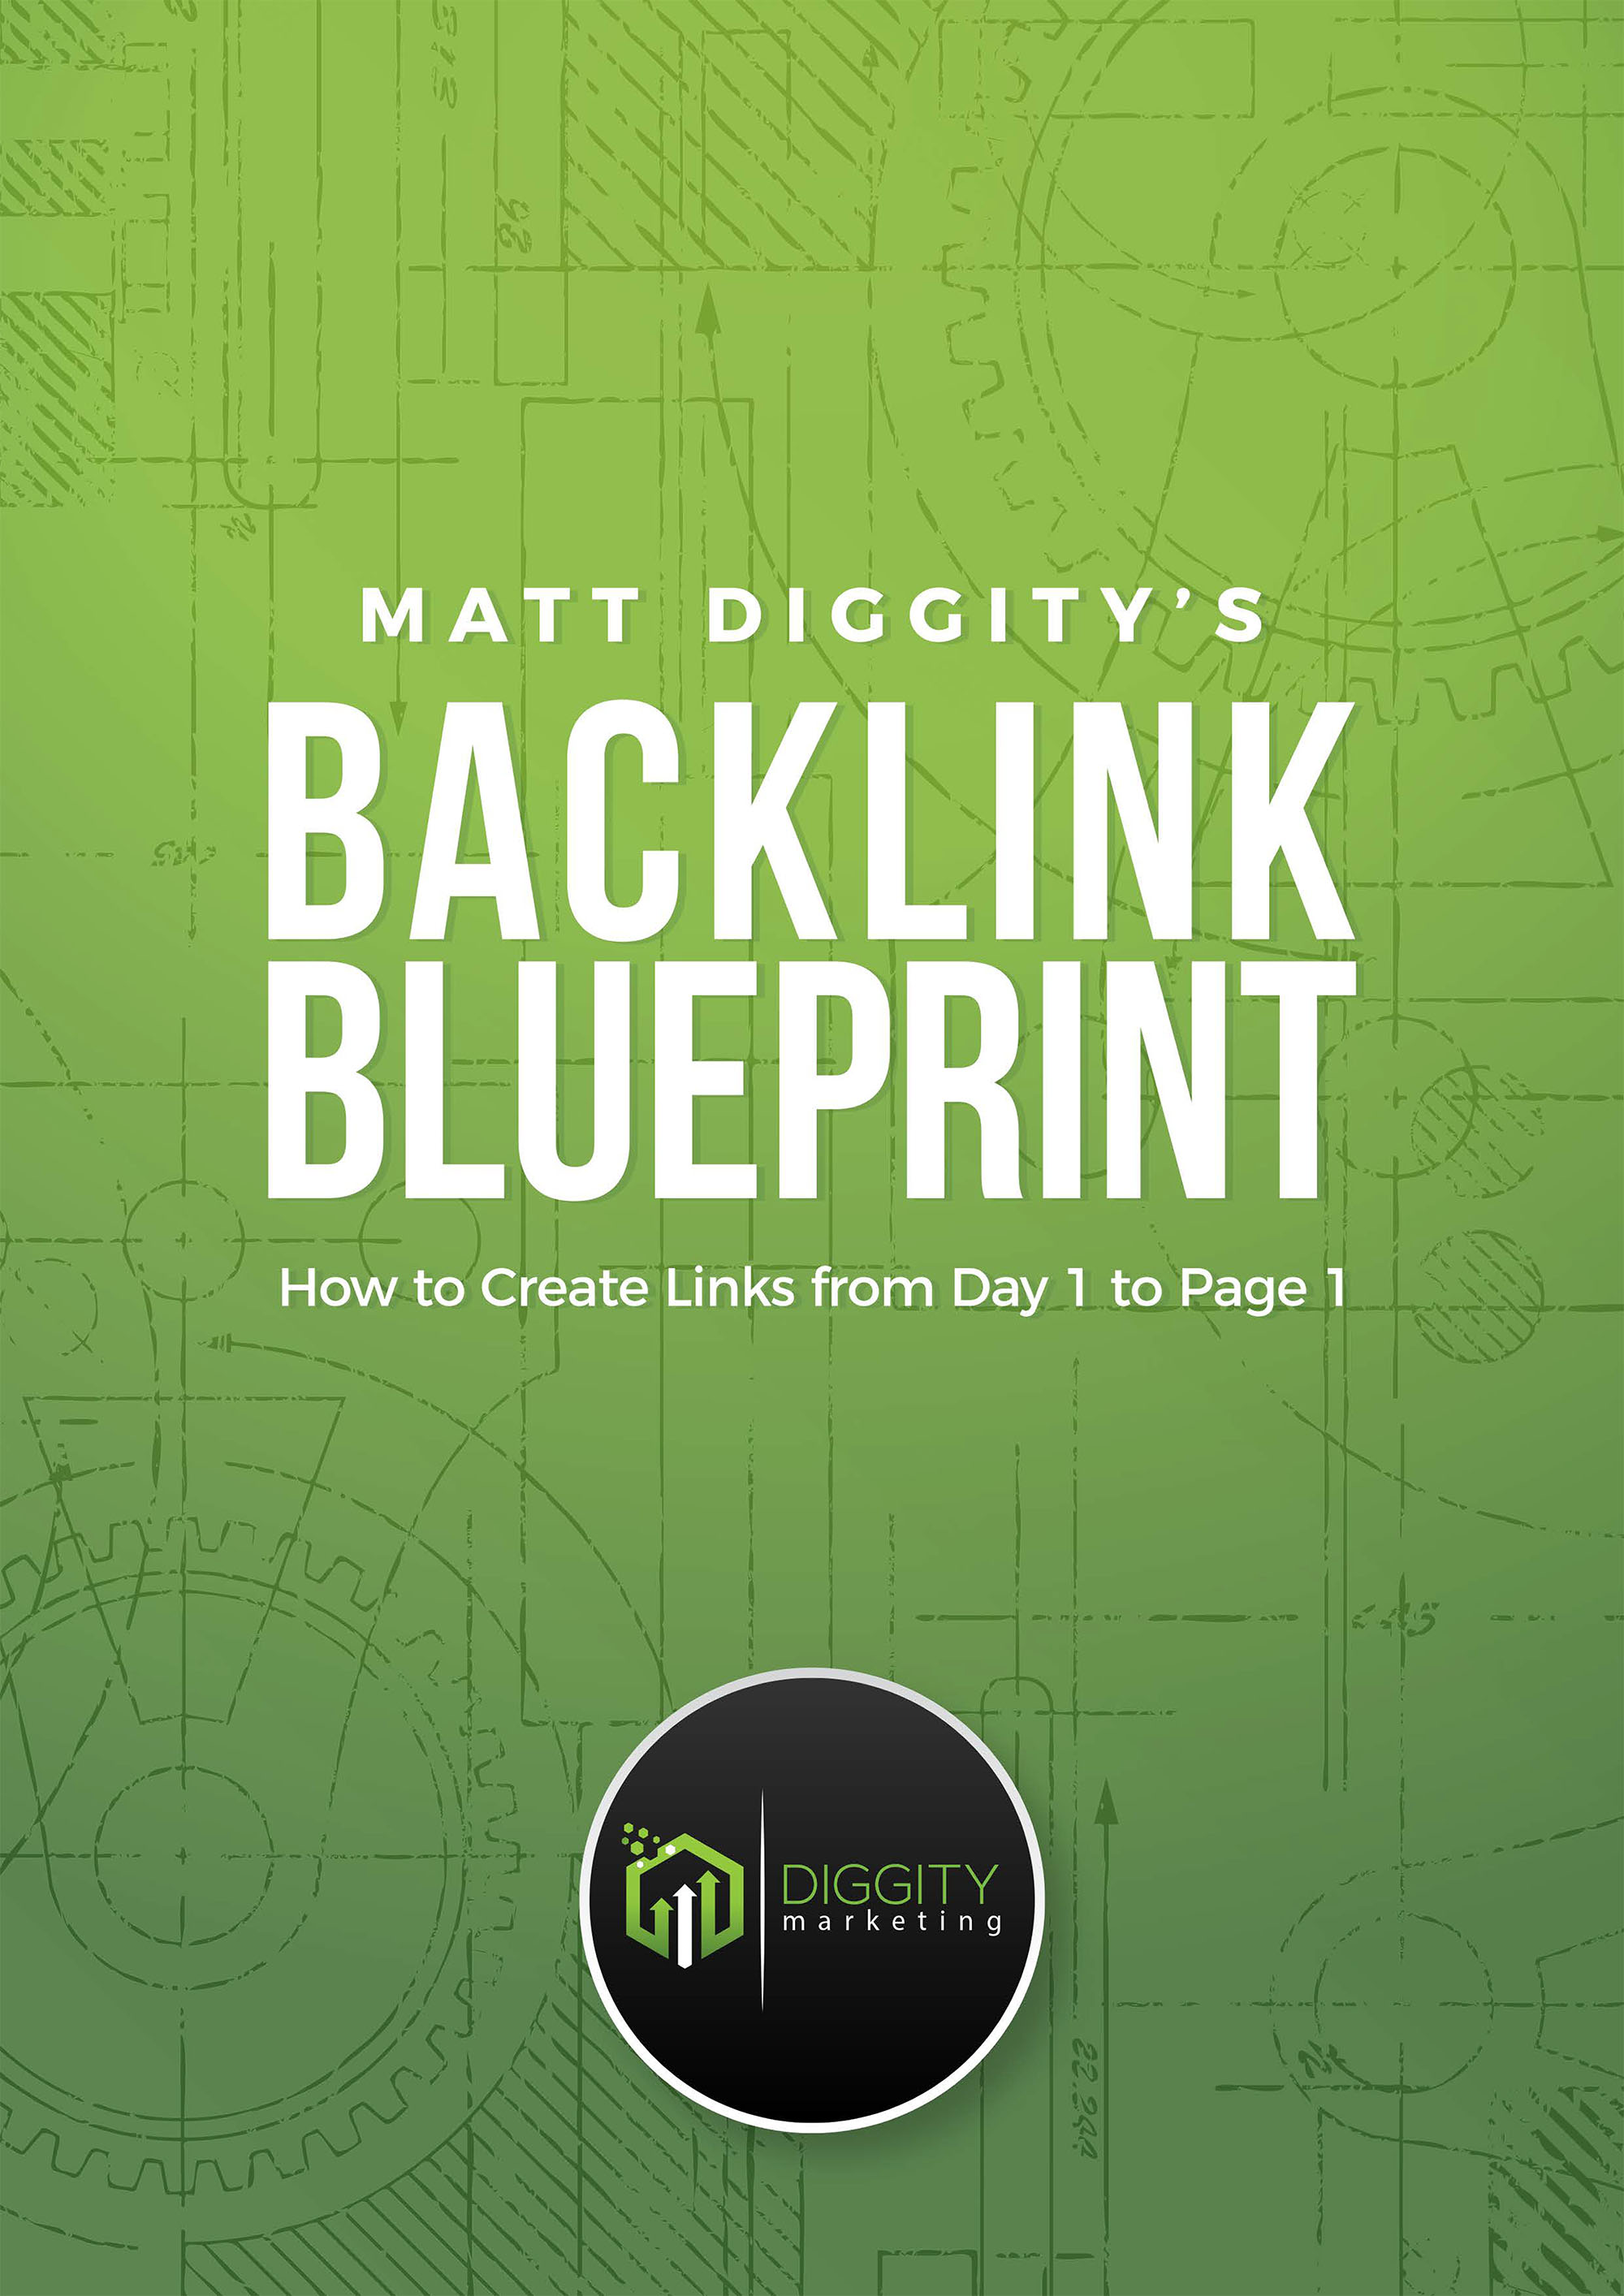 Matt Diggitys Backlink Blueprint